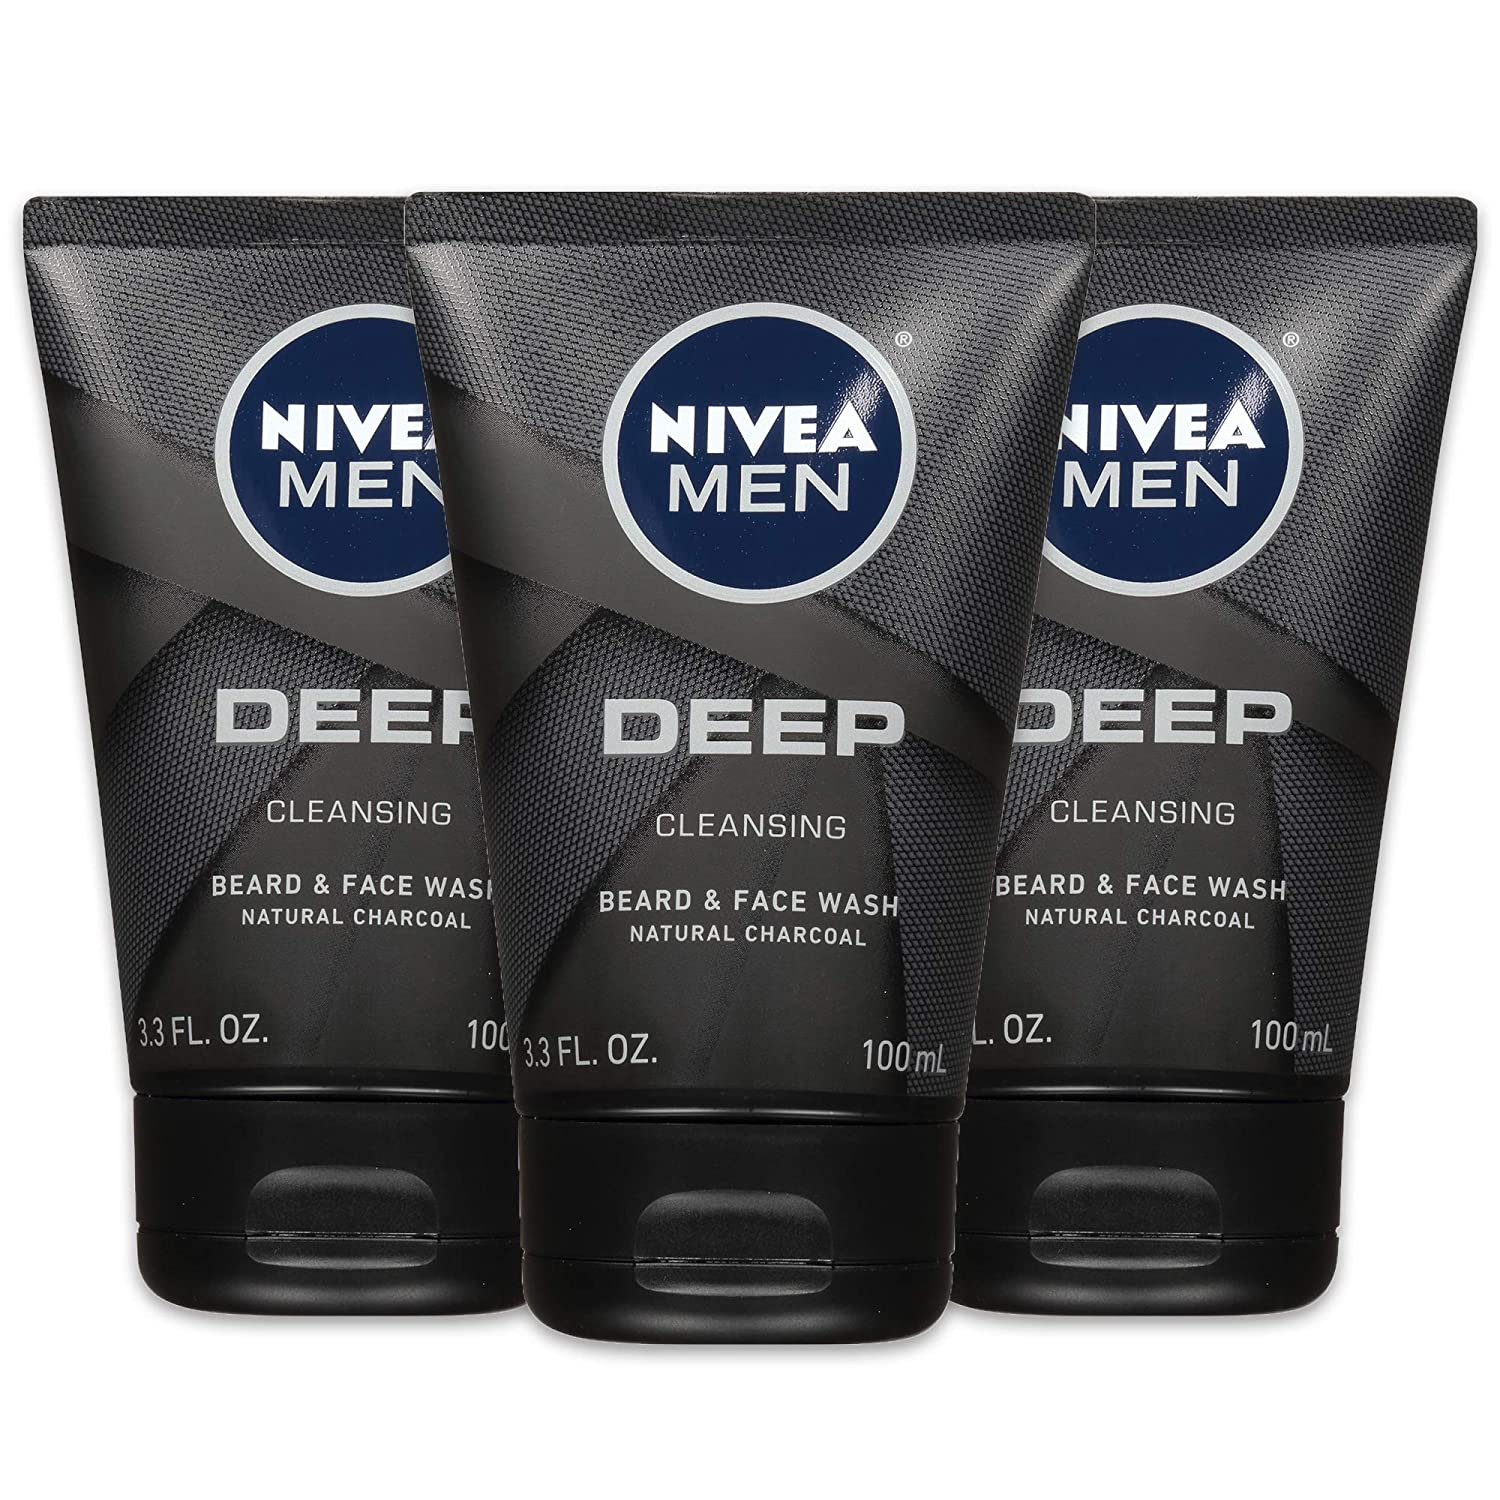 NIVEA Men DEEP Cleansing Beard & Face Wash - With Natural Charcoal to Deeply Clean - 3.3 fl. oz. Tube (Pack of 3): Beauty